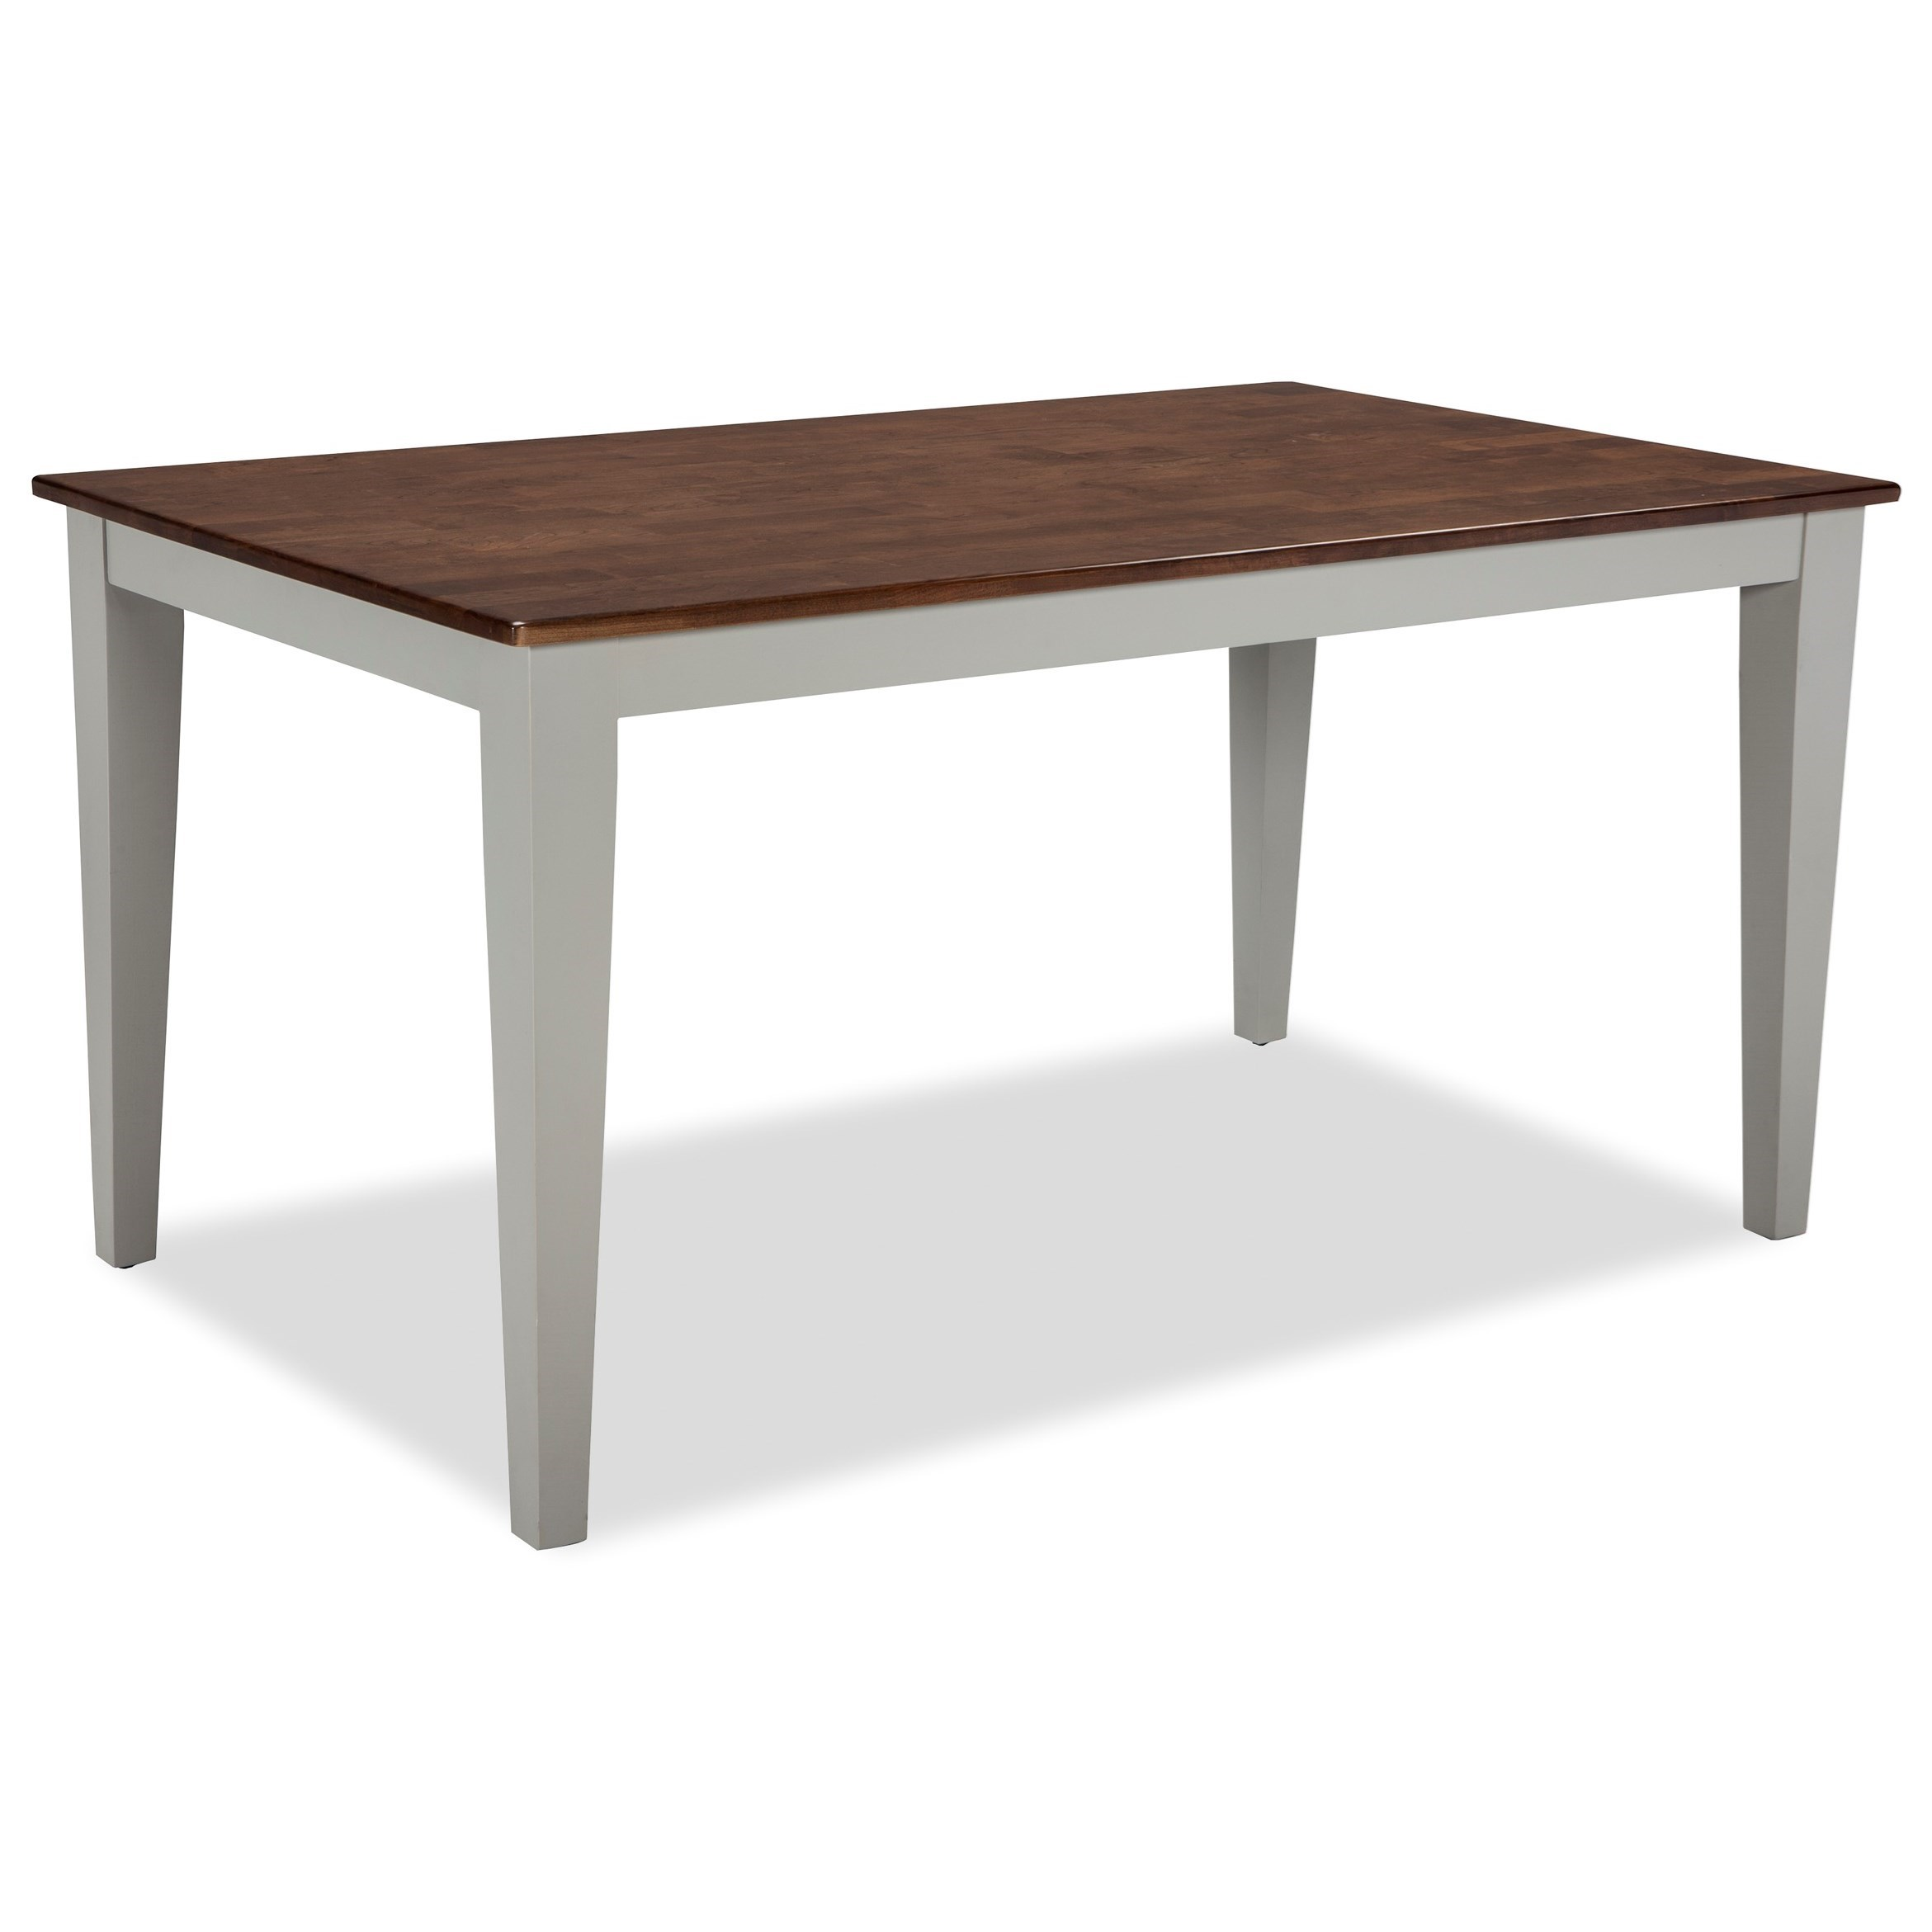 Intercon small space two tone rectangular dining table for Table 6 kitchen and bar canton ohio